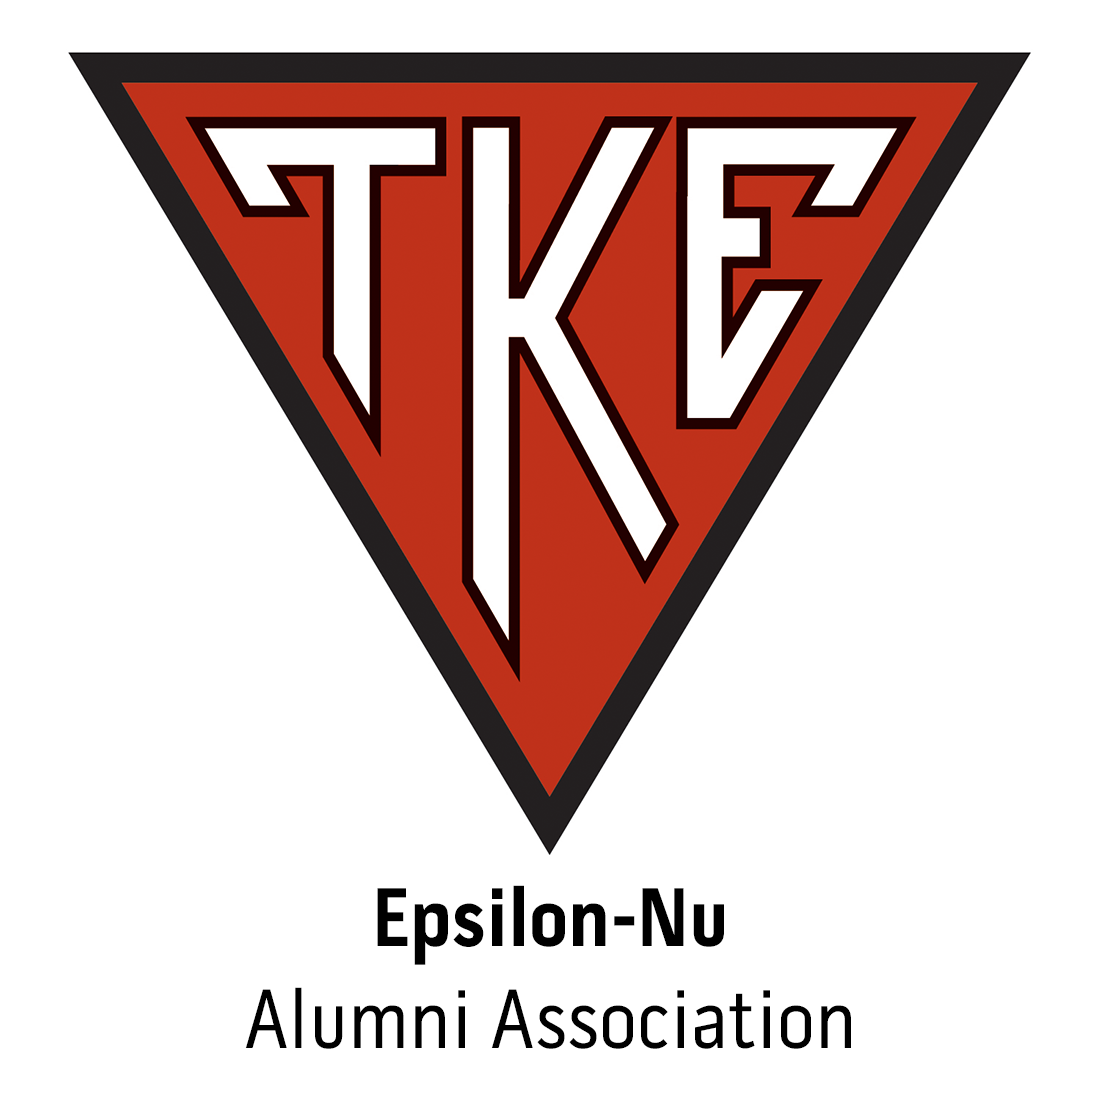 Epsilon-Nu Alumni Association at Univ of Wisconsin-Stevens Point